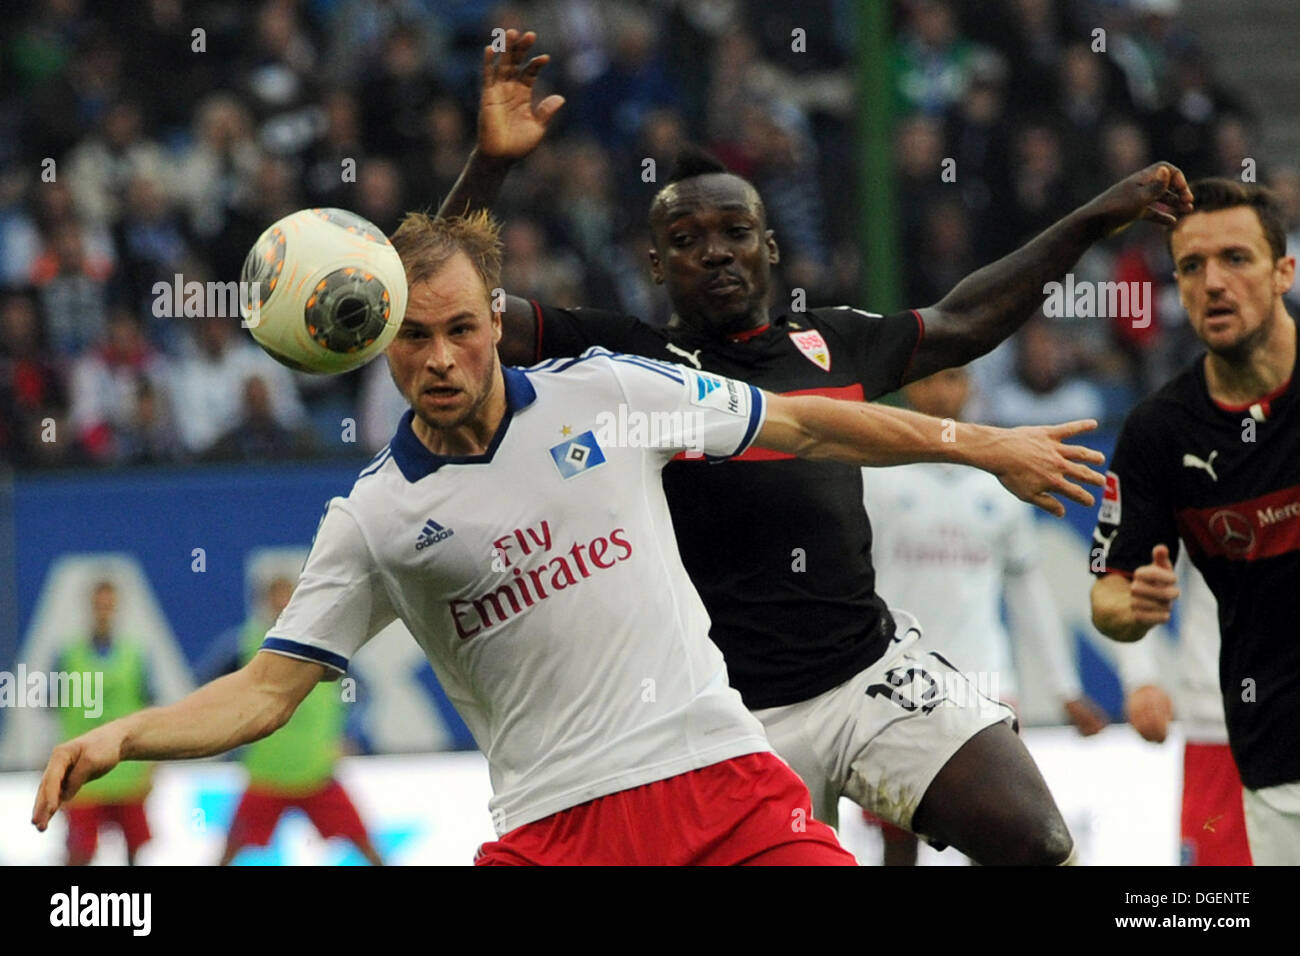 Hamburg, Germany. 20th Oct, 2013. Hamburg's Maximilian Beister (L) vies for the ball with Stuttgart's Arthur Boka (C) next to Stuttgart's Christian Gentner during the German Bundesliga soccer match between Hamburger SV and VfB Stuttgart at the Imtech Arena in Hamburg, Germany, 20 October 2013. Photo: ANGELIKA WARMUTH (ATTENTION: Due to the accreditation guidelines, the DFL only permits the publication and utilisation of up to 15 pictures per match on the internet and in online media during the match.)/dpa/Alamy Live News - Stock Image